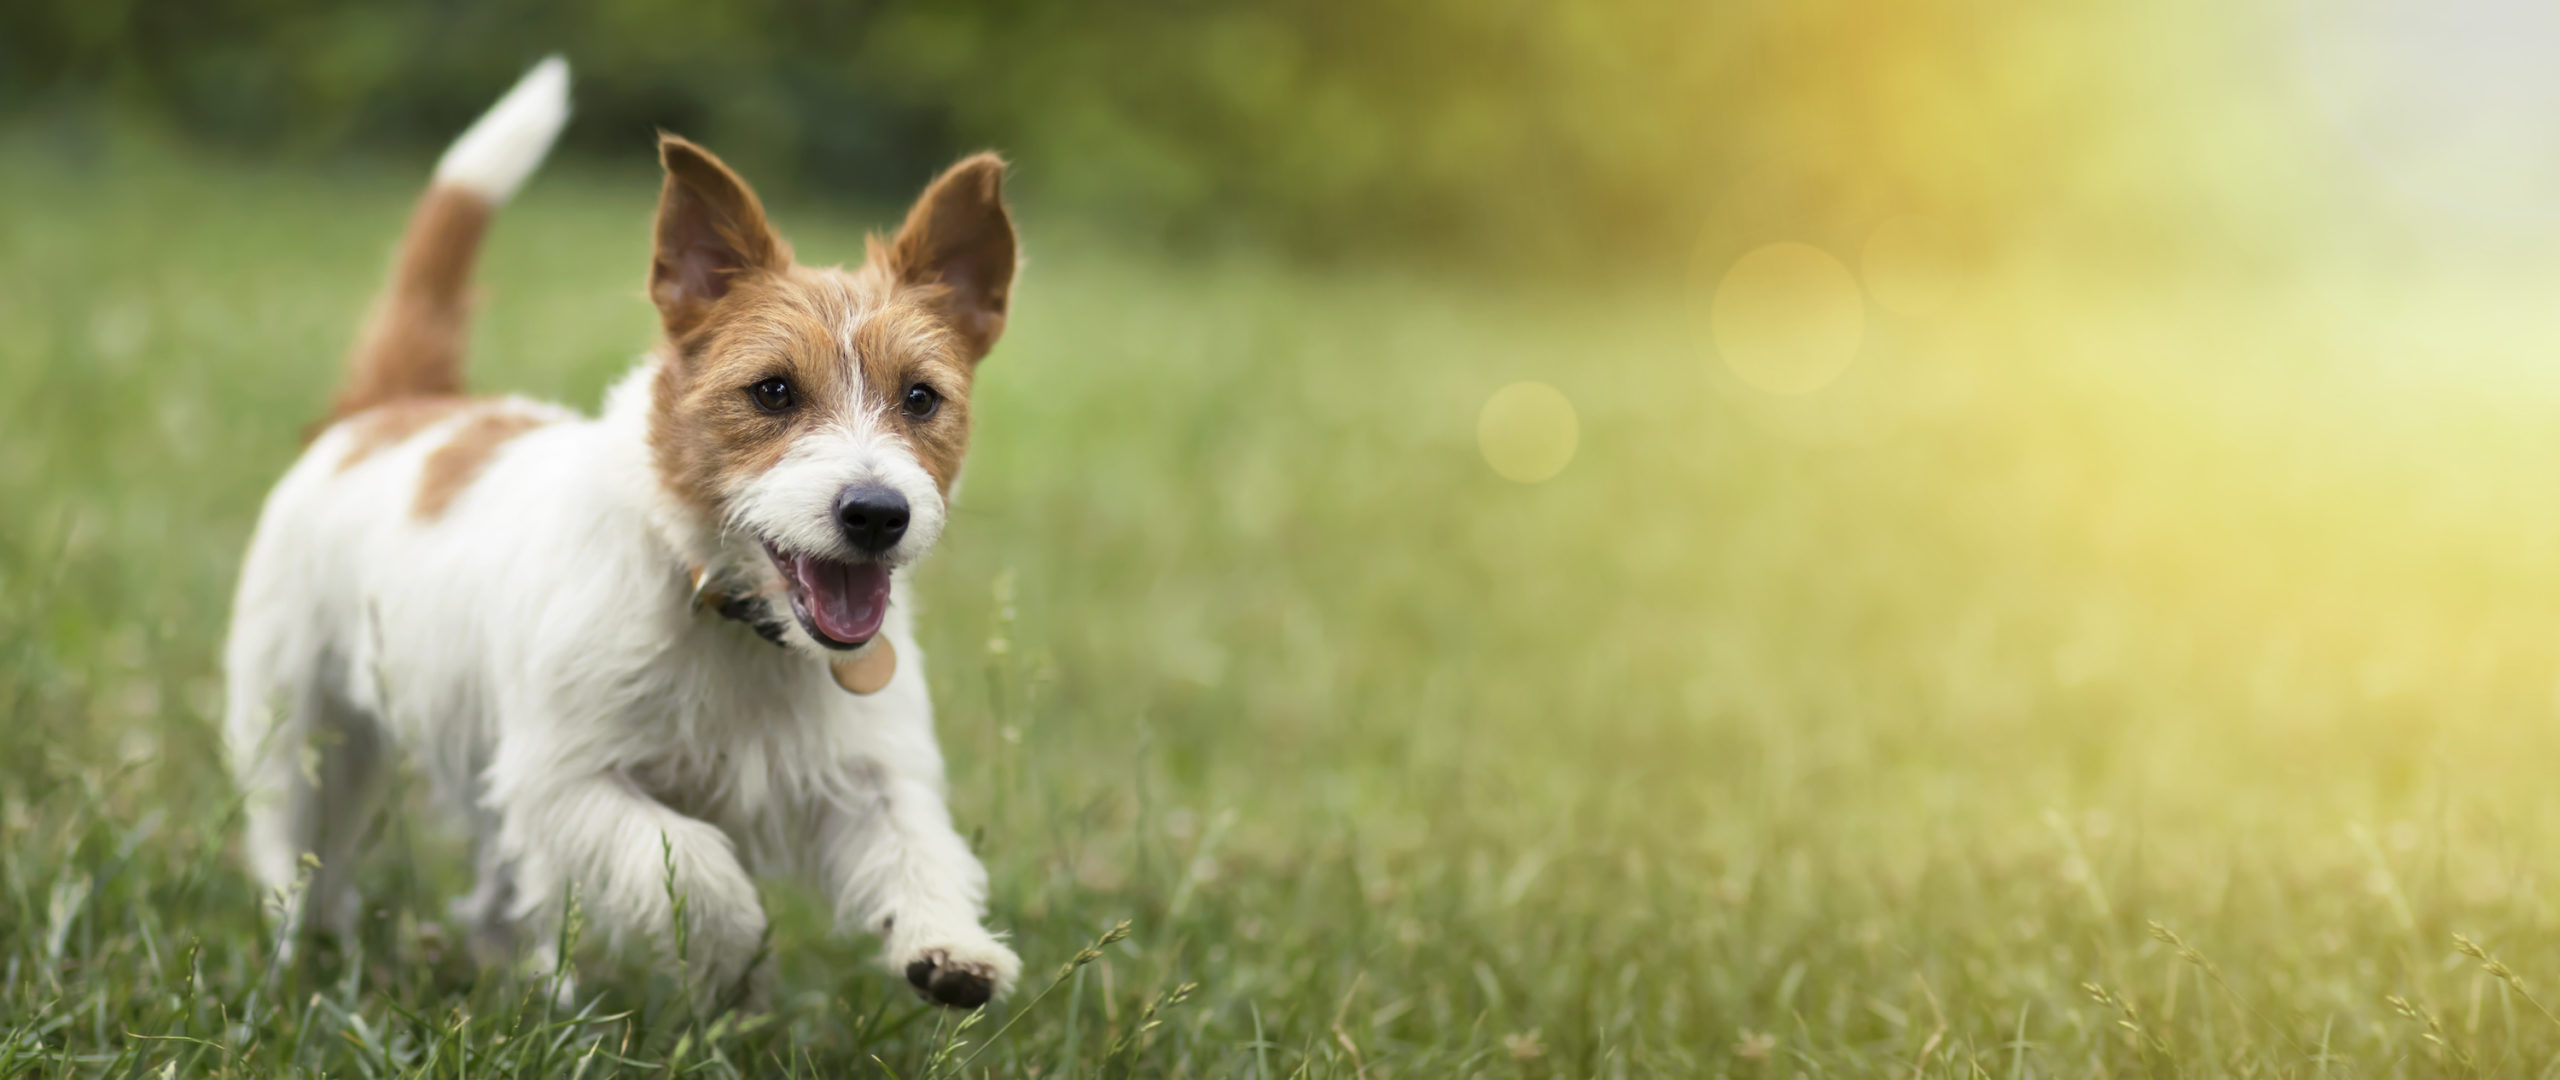 Pet custody concept. Happy pet dog puppy running in the grass in summer.